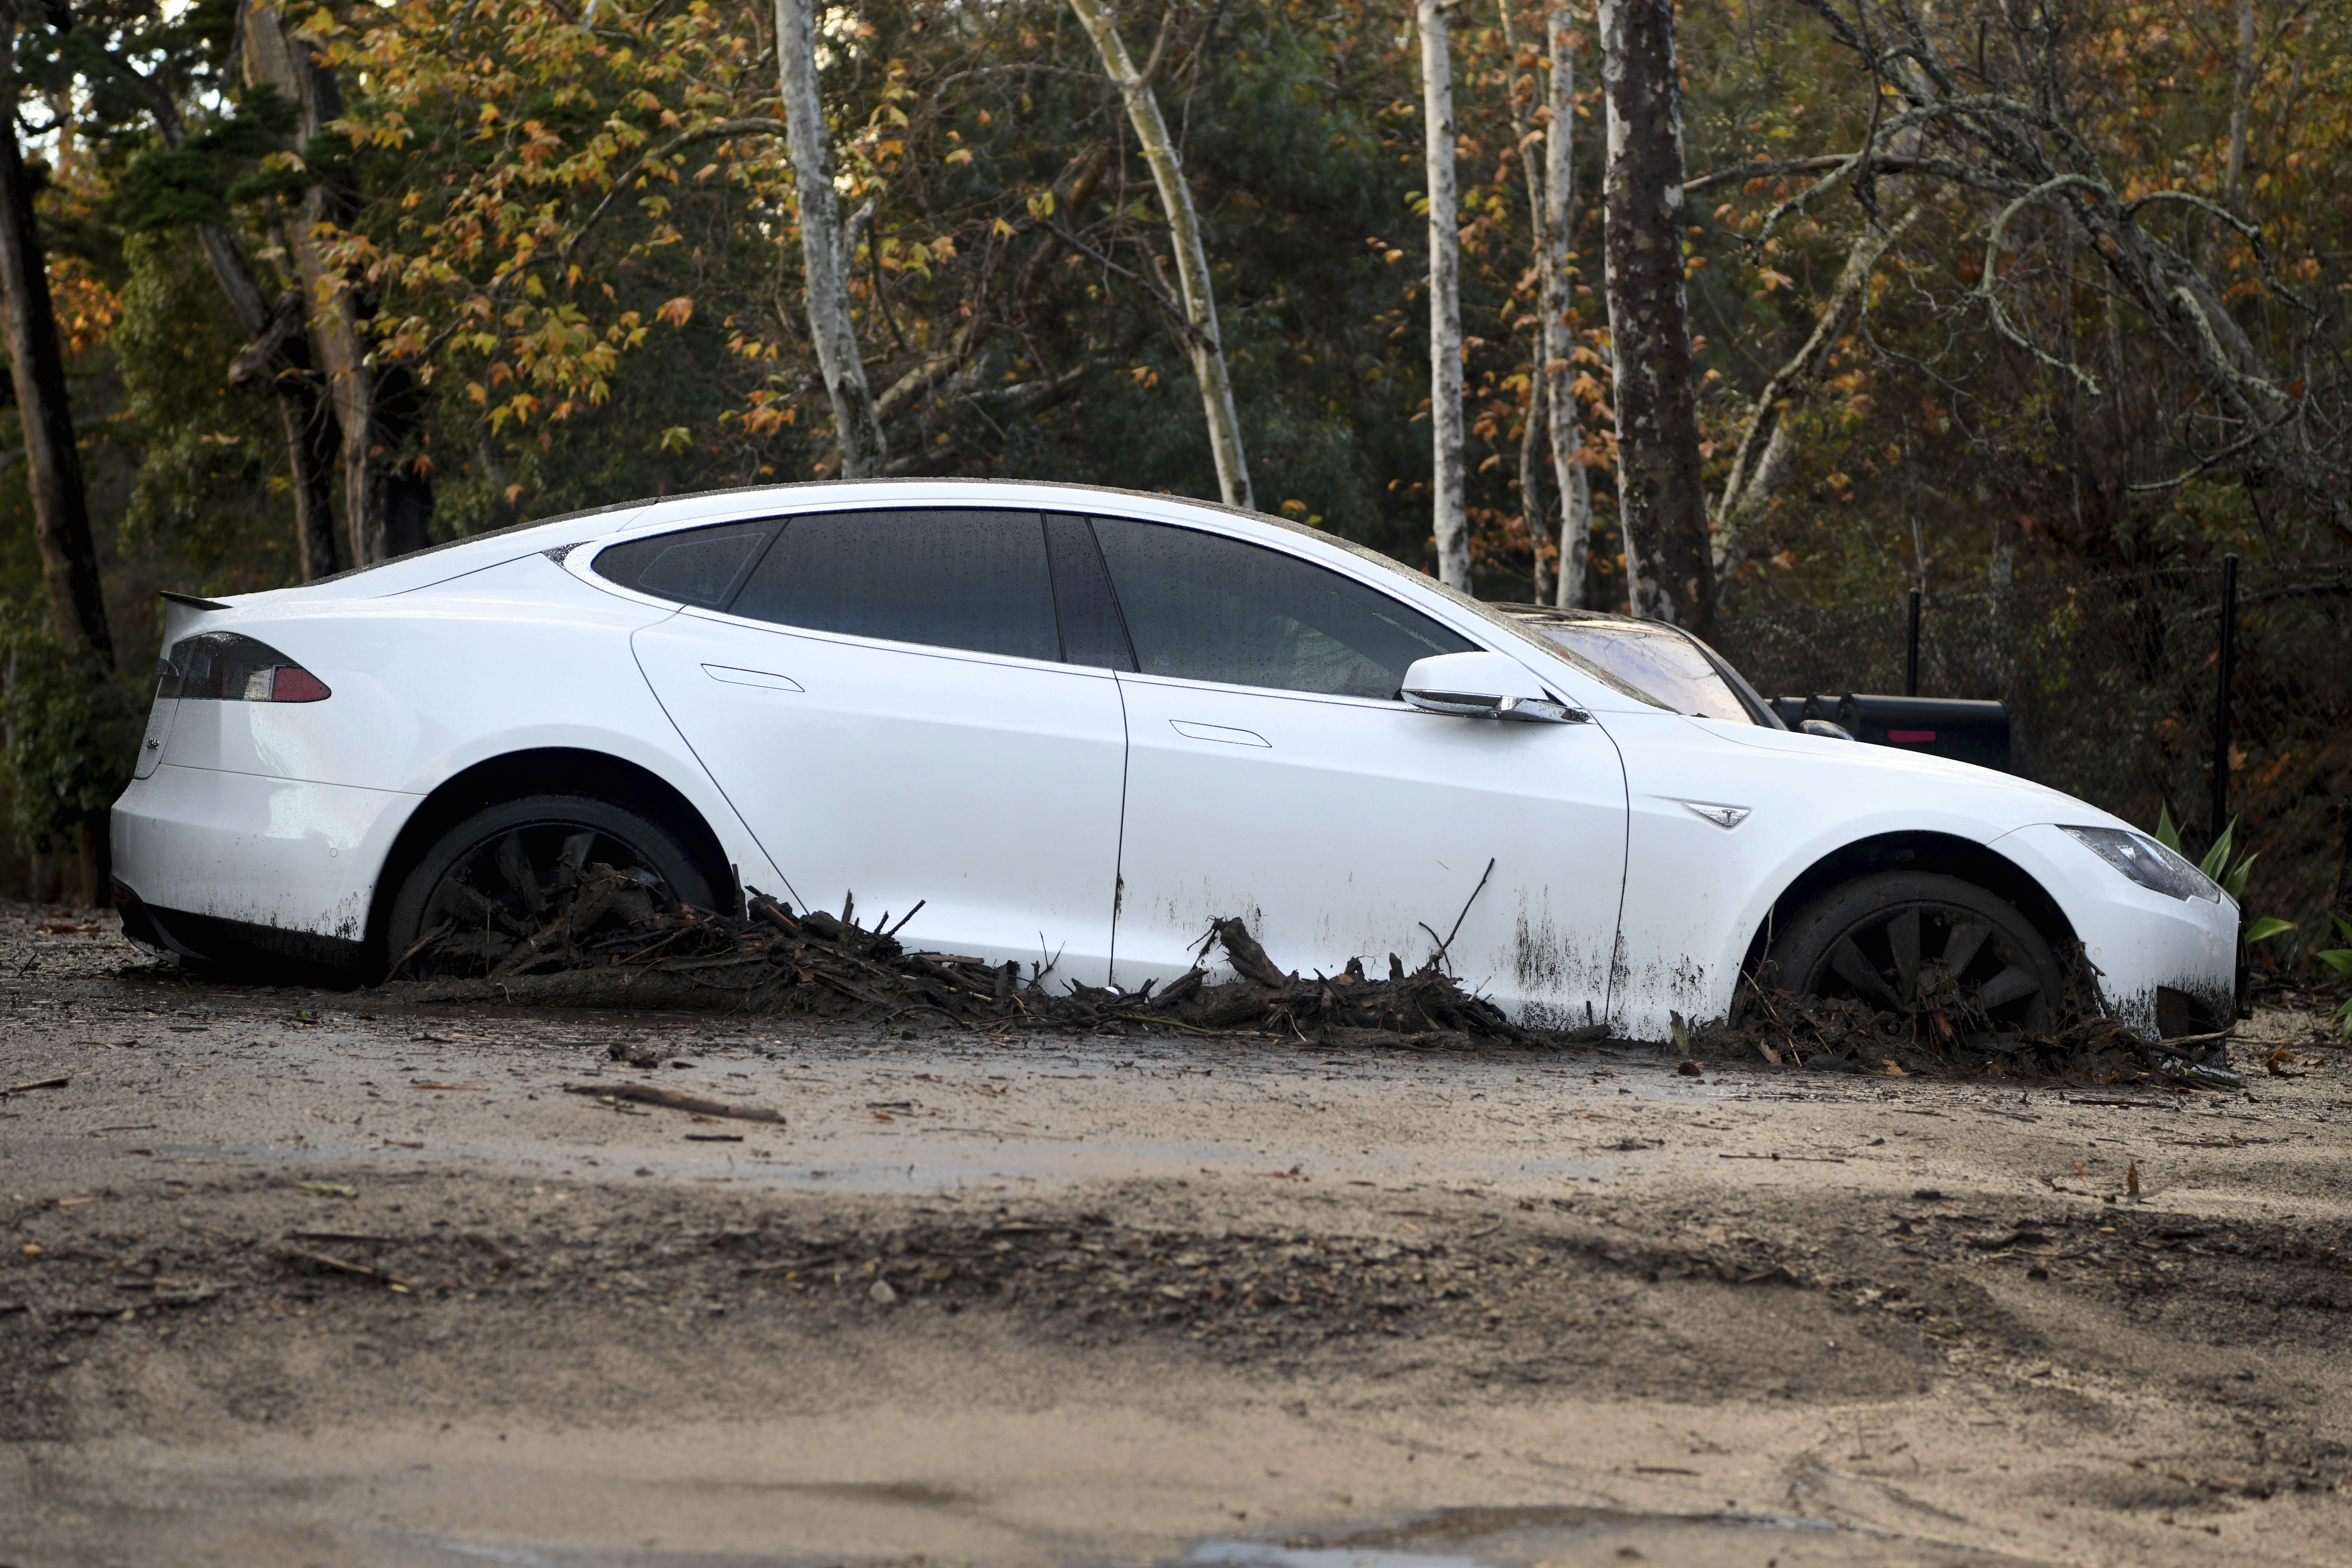 A Tesla sits in mud at a housing complex in Montecito, Calif., Tuesday, Jan. 9, 2018. Dozens of homes were swept away or heavily damaged Tuesday as downpours sent mud and boulders roaring down hills stripped of vegetation by a gigantic wildfire that raged in Southern California last month. (AP Photo/Michael Owen Baker)